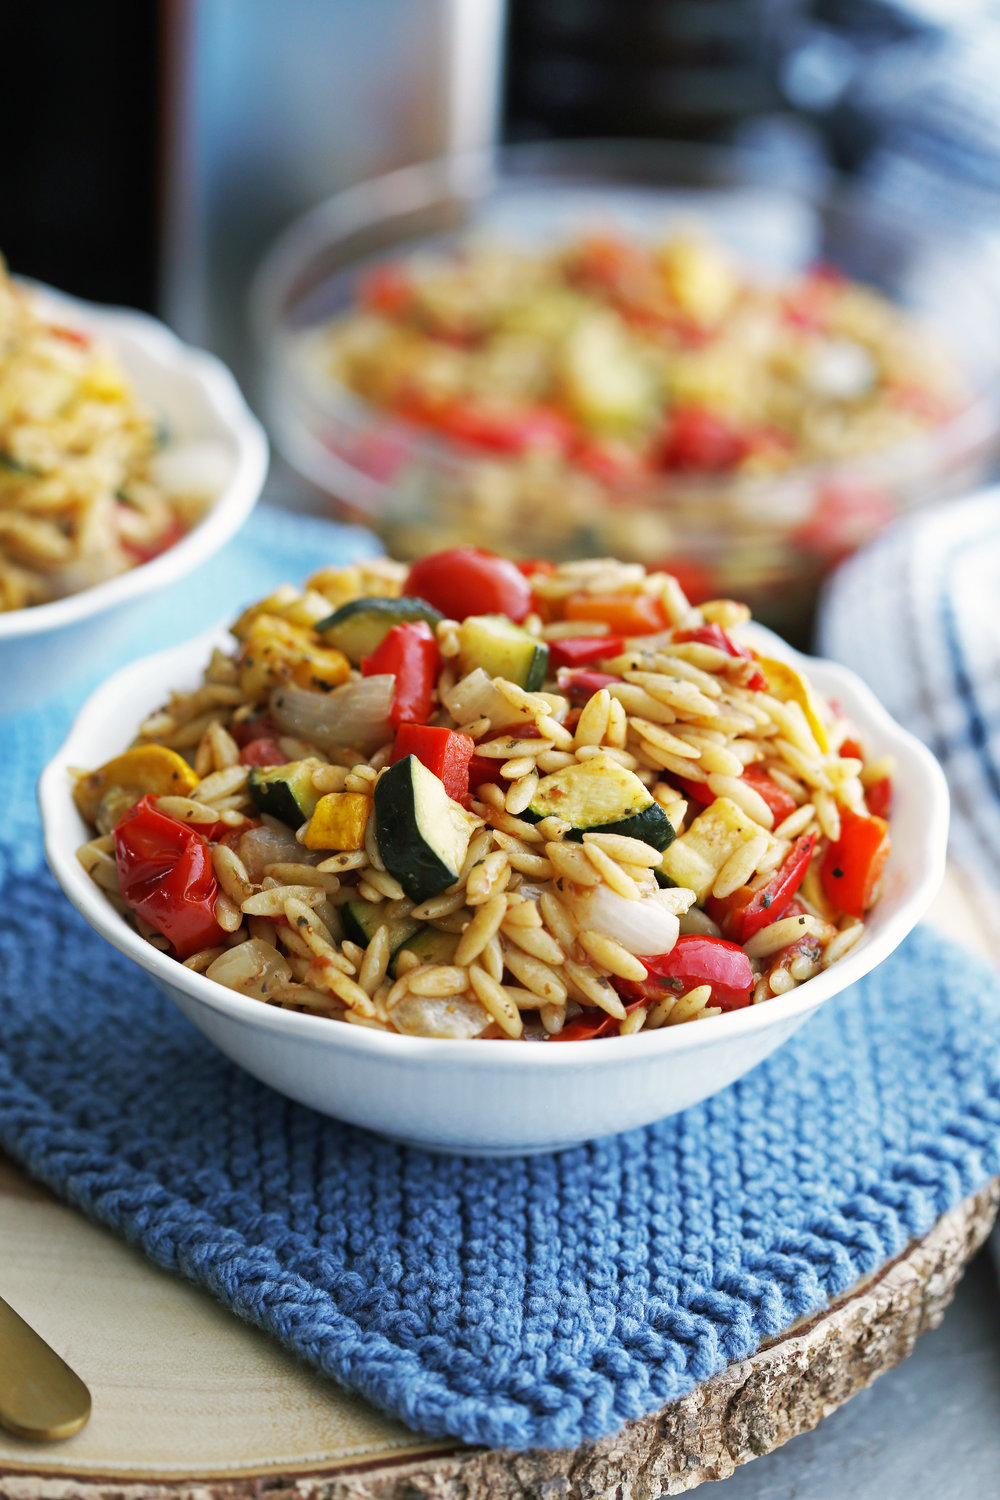 A small white bowl containing Roasted summer vegetable and orzo pasta salad with Dijon-balsamic vinaigrette